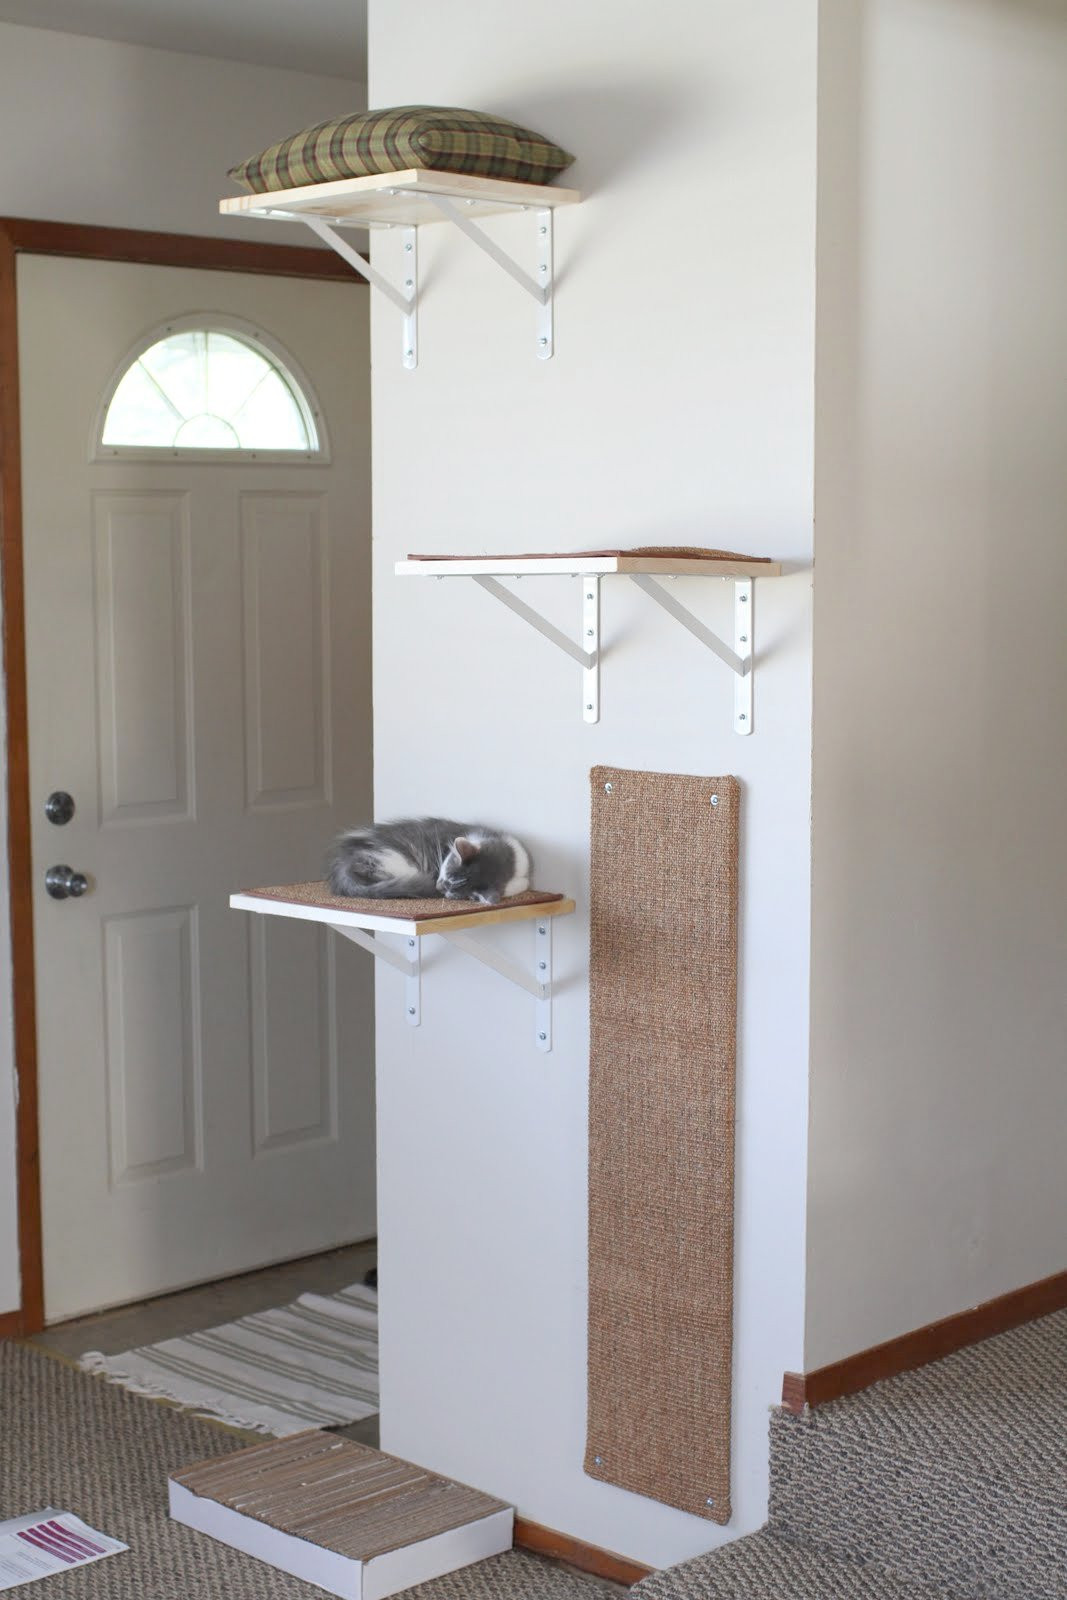 Best ideas about DIY Cat Wall Shelves . Save or Pin Now.